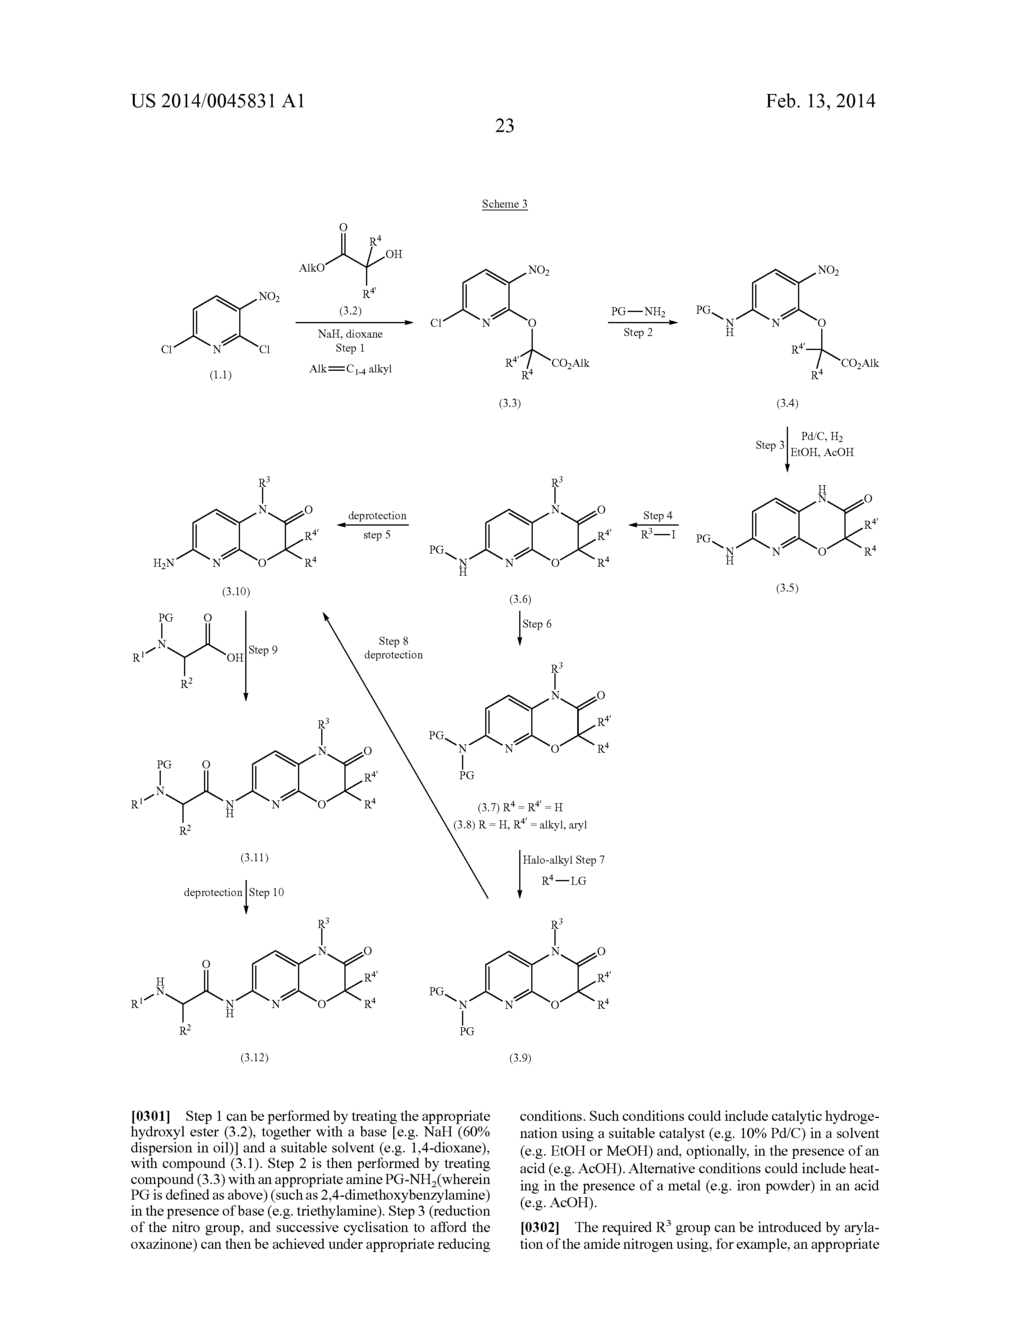 BICYCLIC HETEROCYCLE COMPOUNDS AND THEIR USES IN THERAPY - diagram, schematic, and image 24